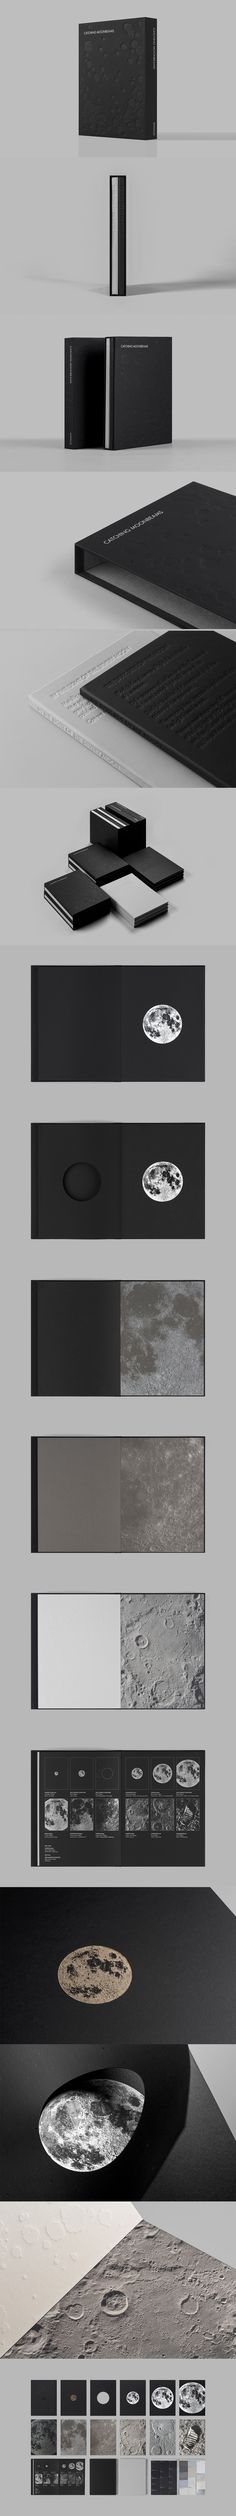 Catching Moonbeams. Toby Ng Design. The light of the moon was chosen as a metaphor for Antalis paper printing effects project to promote their black, grey and sliver paper. The project is presented in a set of two volumes within a specially designed moon-textured case.